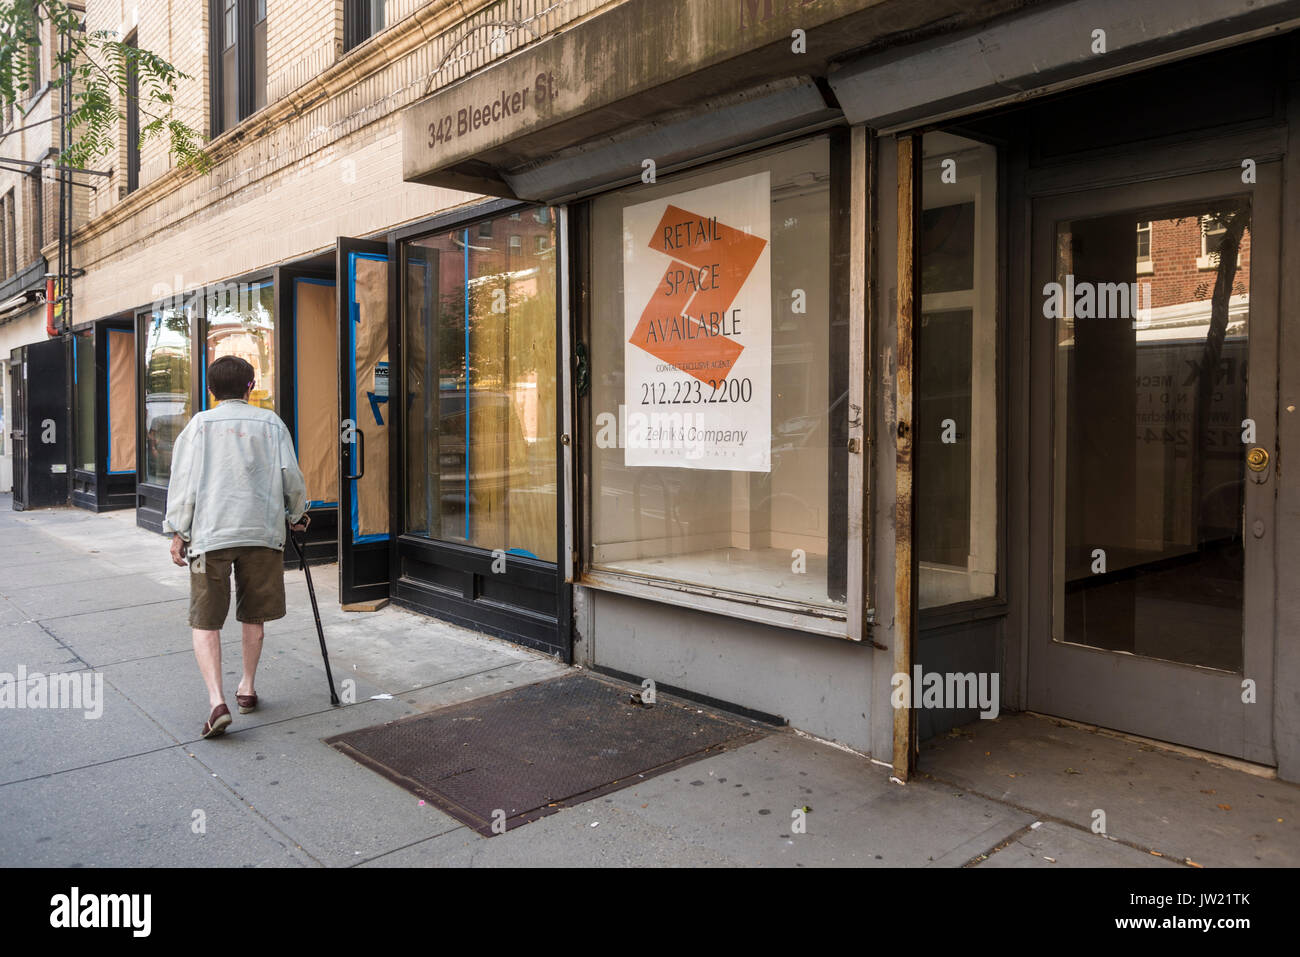 New York, NY, USA - An elderly woman with a cane walks past some of the many empty storefronts for lease on Bleecker Street that remains vacant due to high rent. ©Stacy Walsh Rosenstock - Stock Image